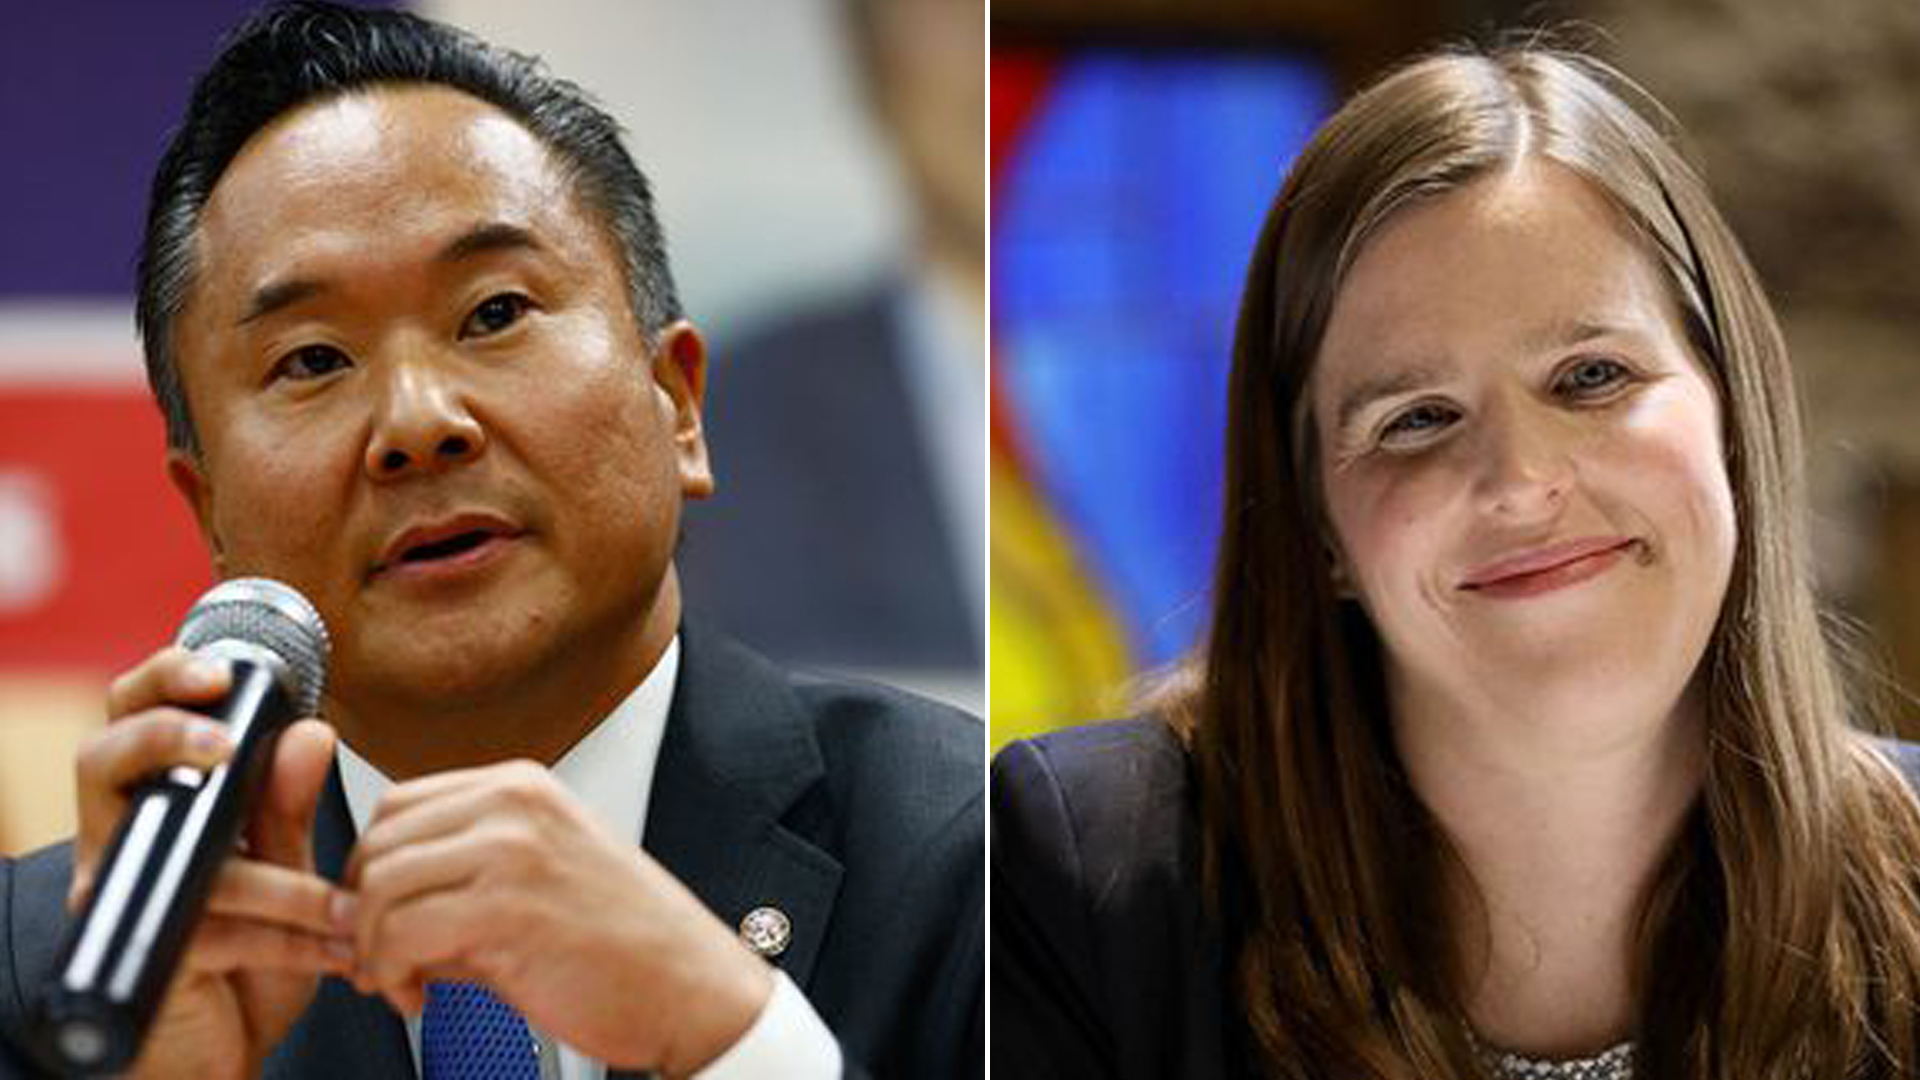 John Lee, left, will face Loraine Lundquist in a runoff. (Credit: Los Angeles Times)